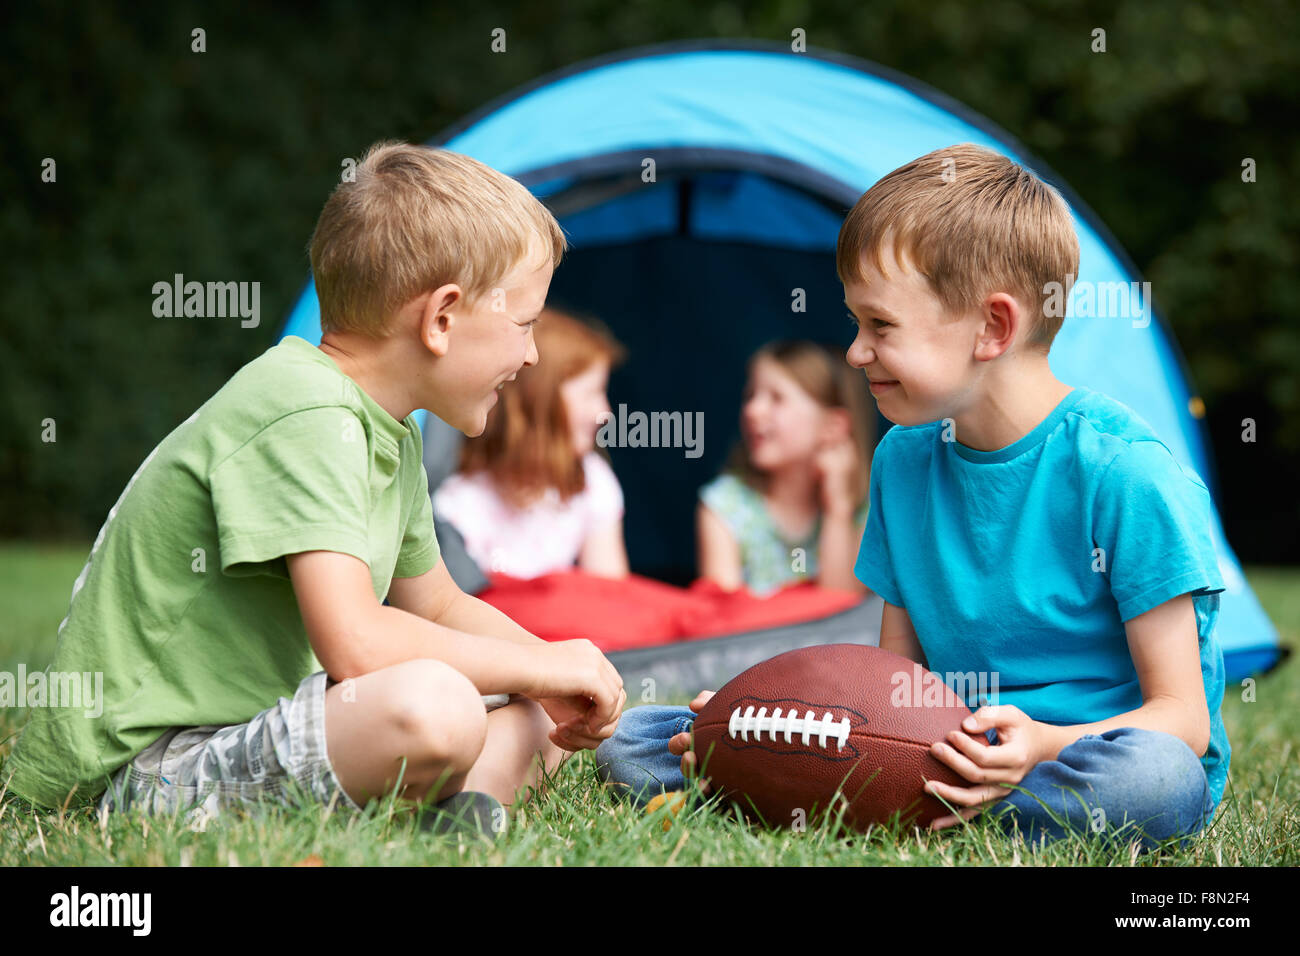 Two Boys Talking And Playing With American Football On camping Trip - Stock Image